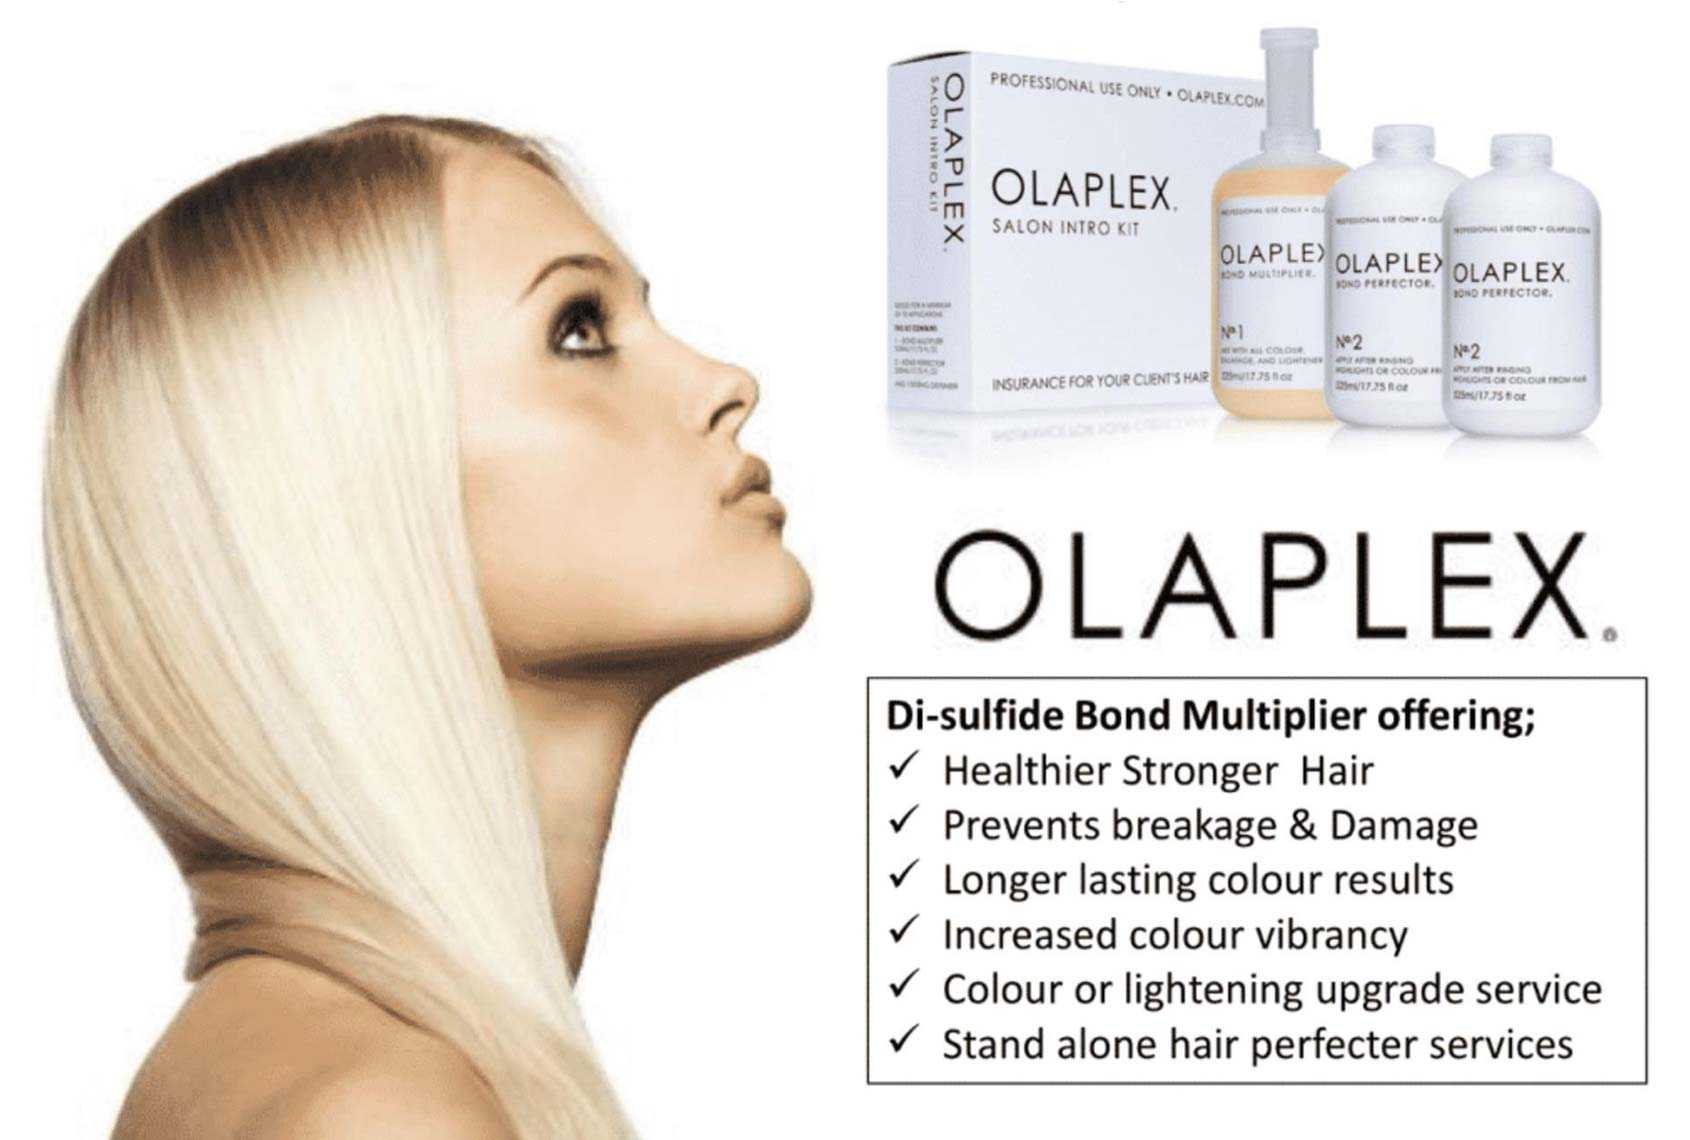 Introducing Olaplex at The Boutik salon in Plymouth